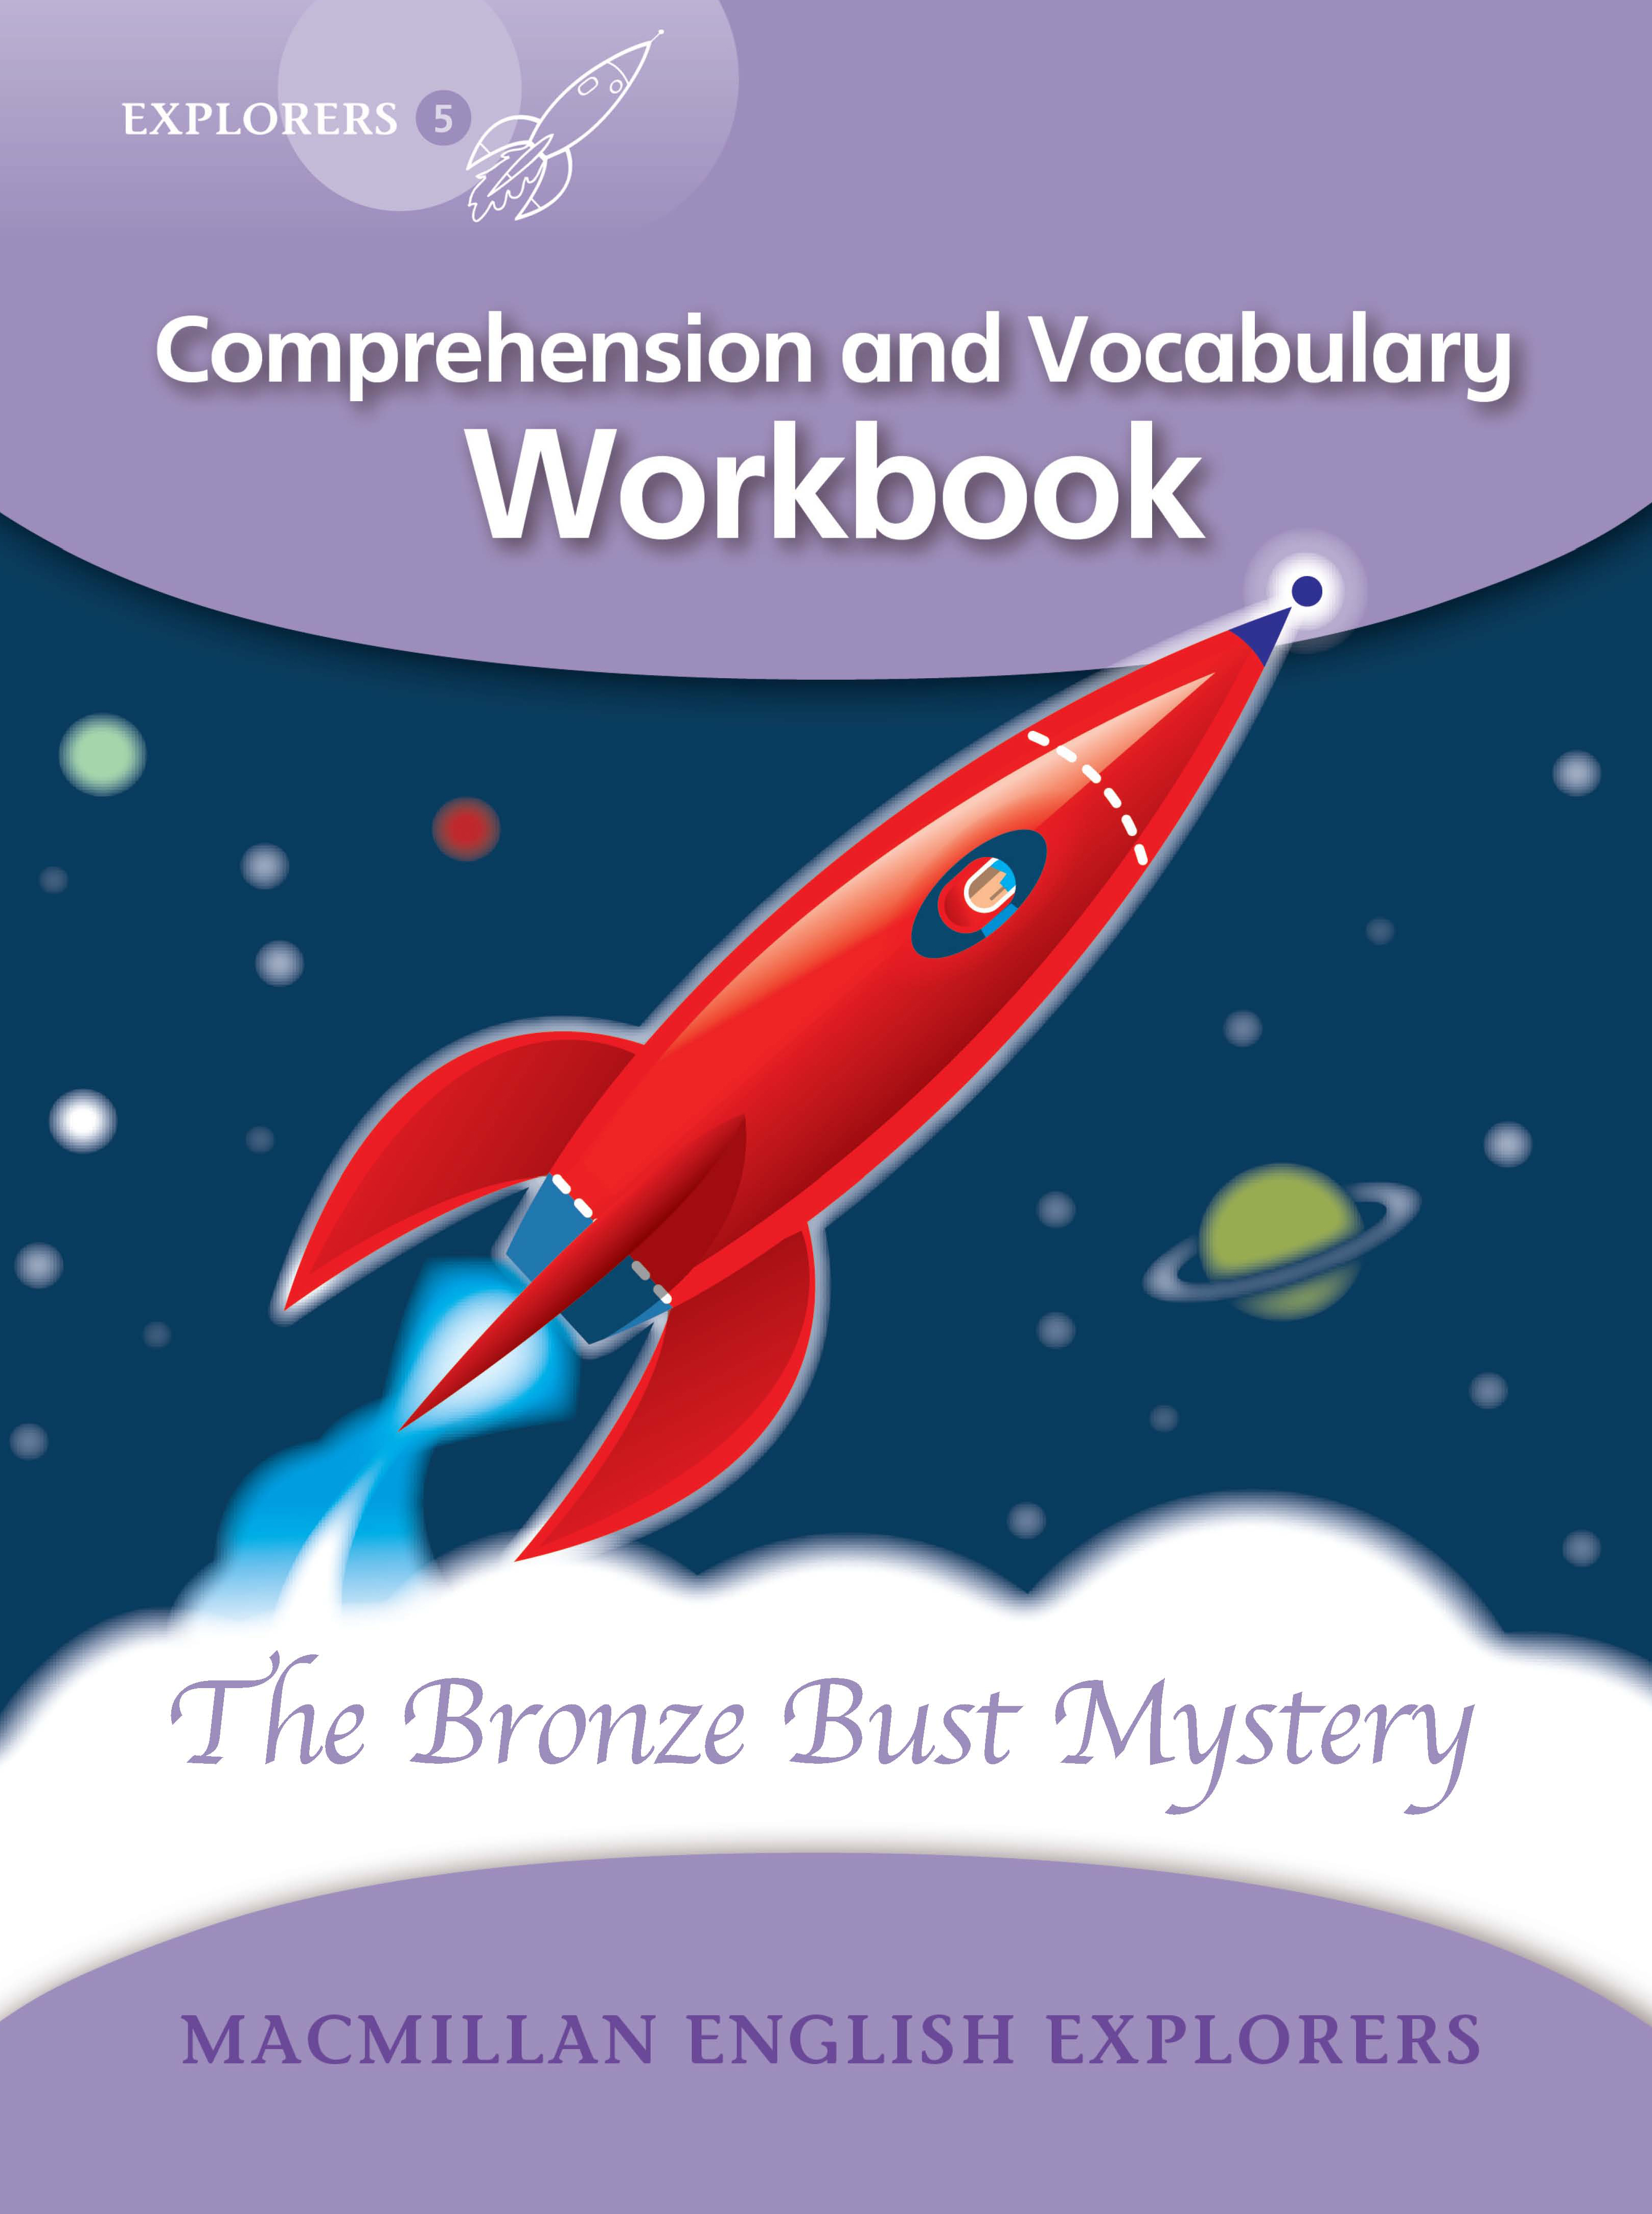 Explorers 5: The Bronze Bust Mystery Workbook